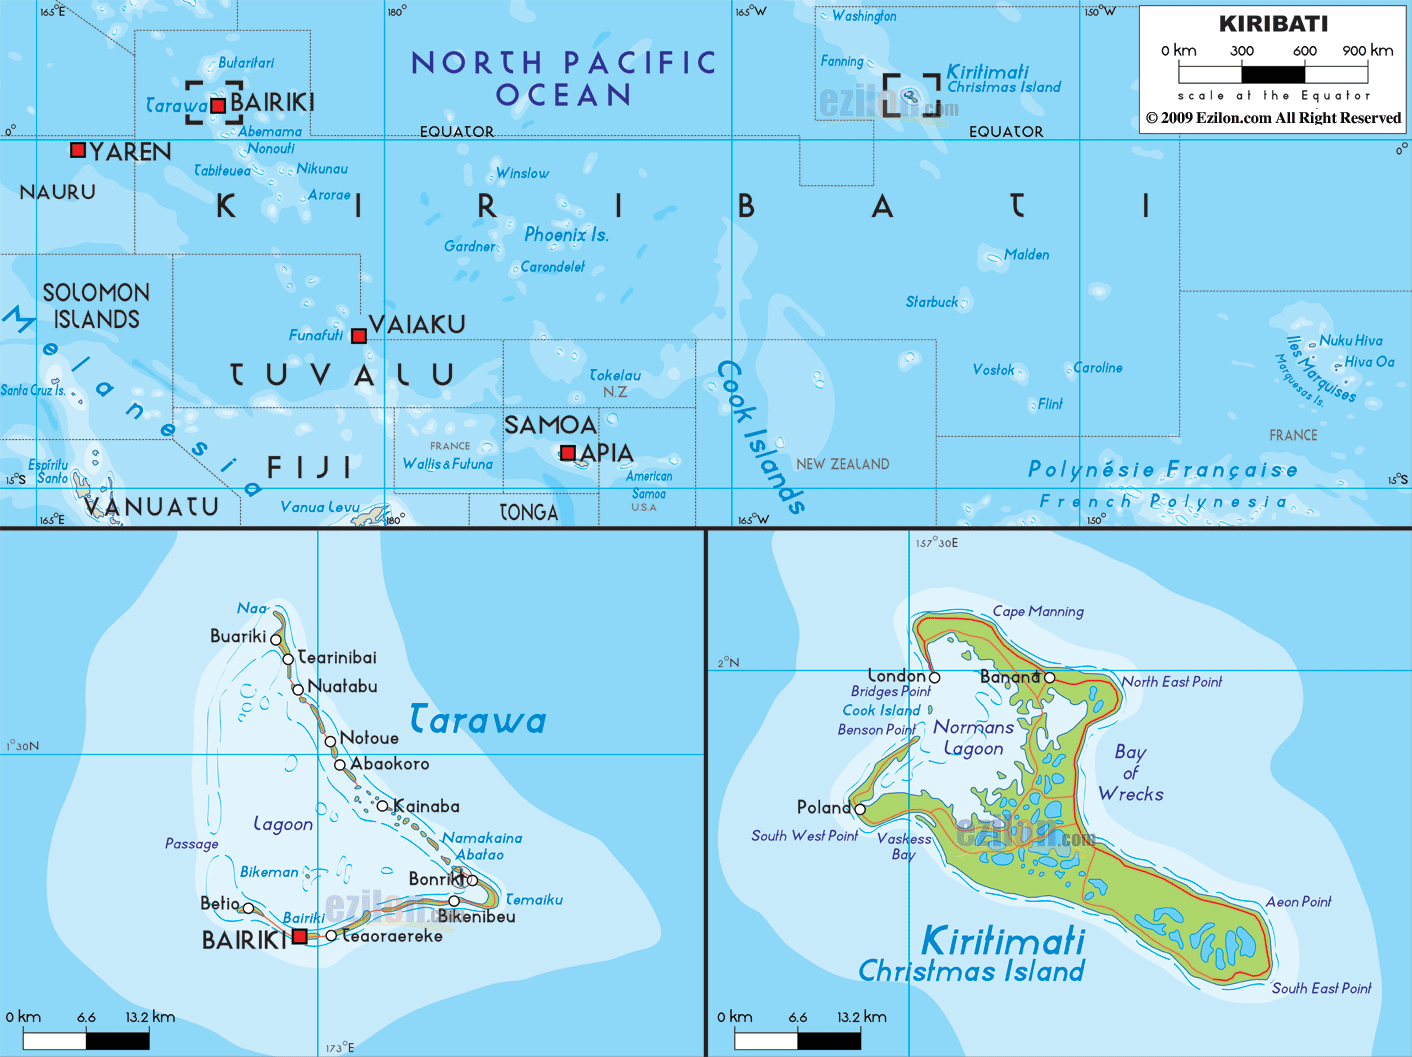 topographical map of australia with Maps Of Kiribati on Australian World View together with Tanzania additionally Population together with Bendigo shepparton map 383 edition13 ubd gregorys furthermore Australia road and terrain map folded hema.